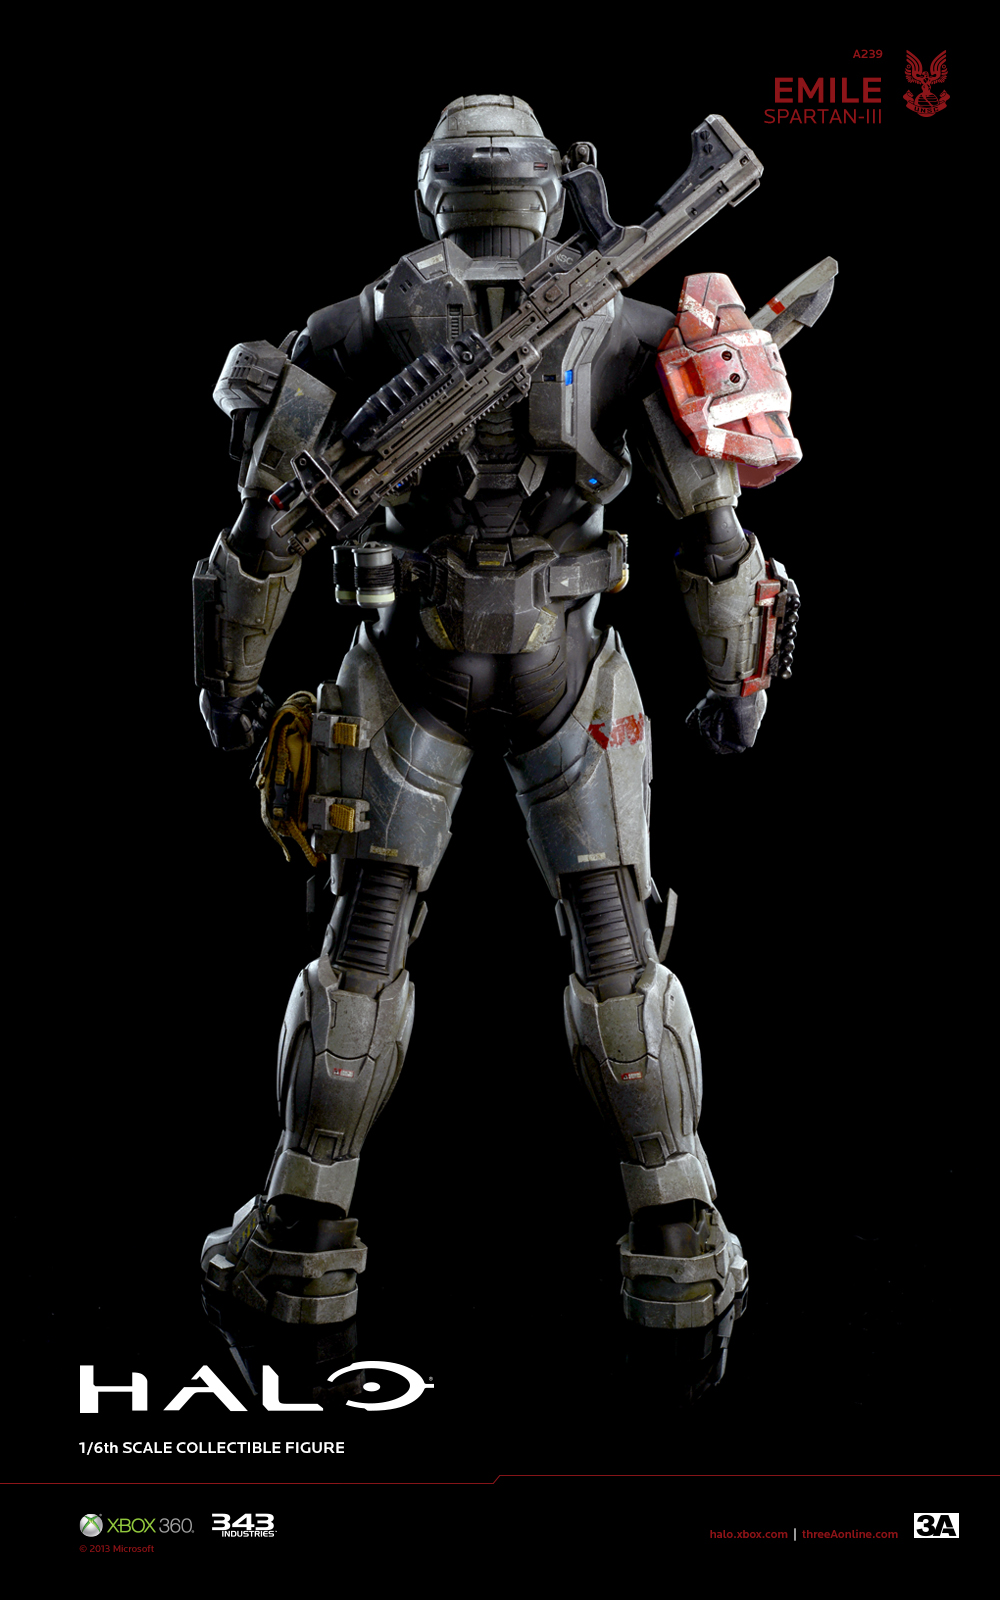 New Images and Info For 3A Halo Reach Emile and EVA - The Toyark - News